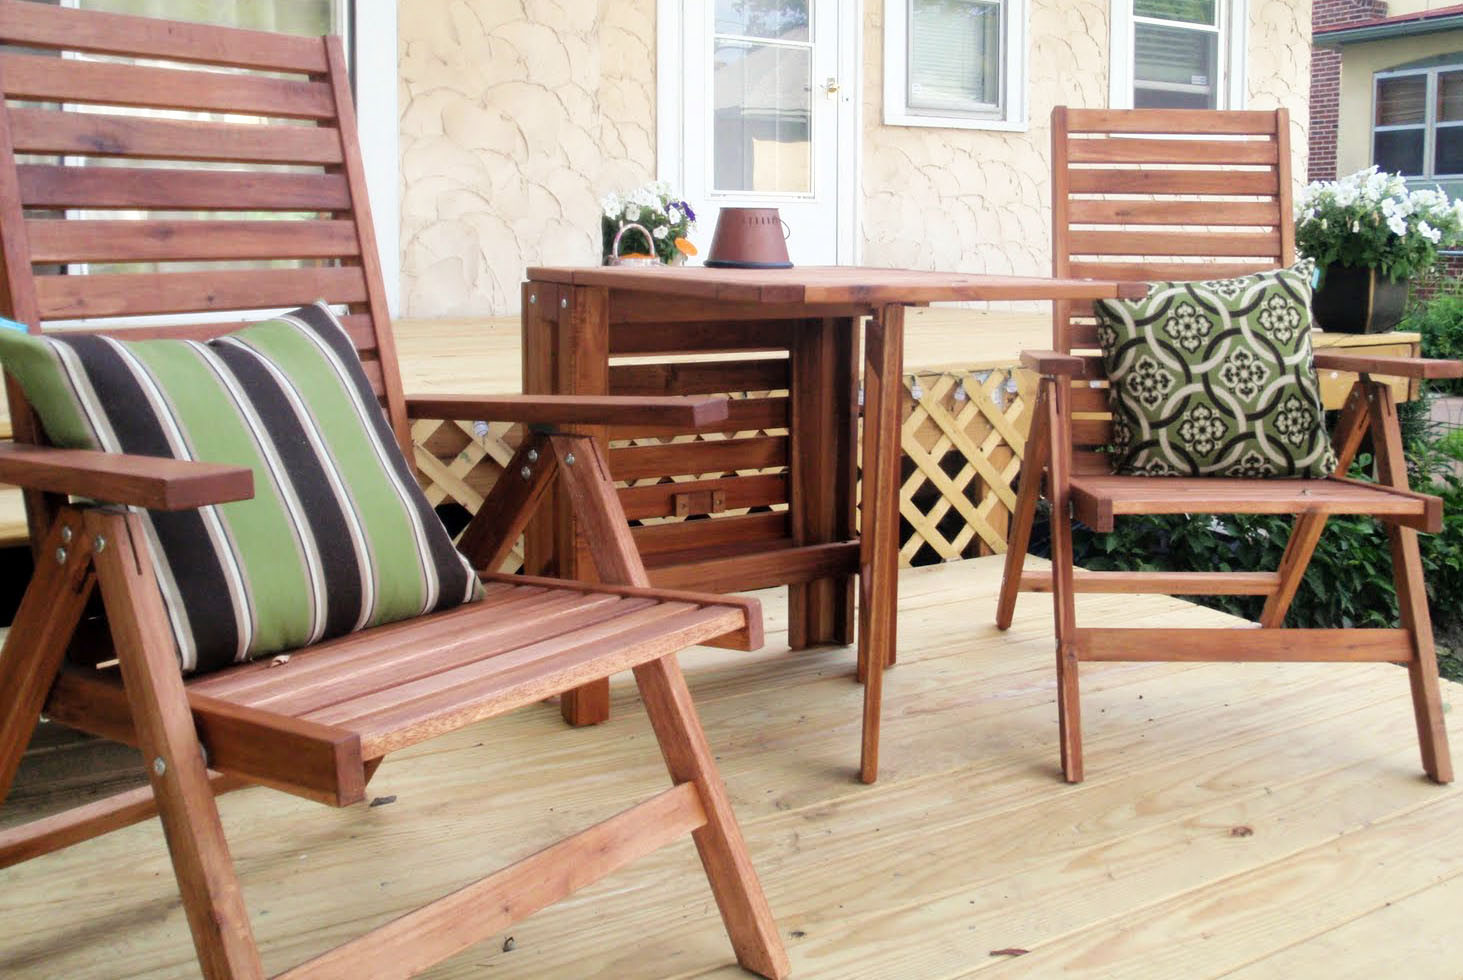 Best ideas about Wooden Patio Furniture . Save or Pin Hammers and High Heels Patio Furniture Refresh & Outdoor Now.